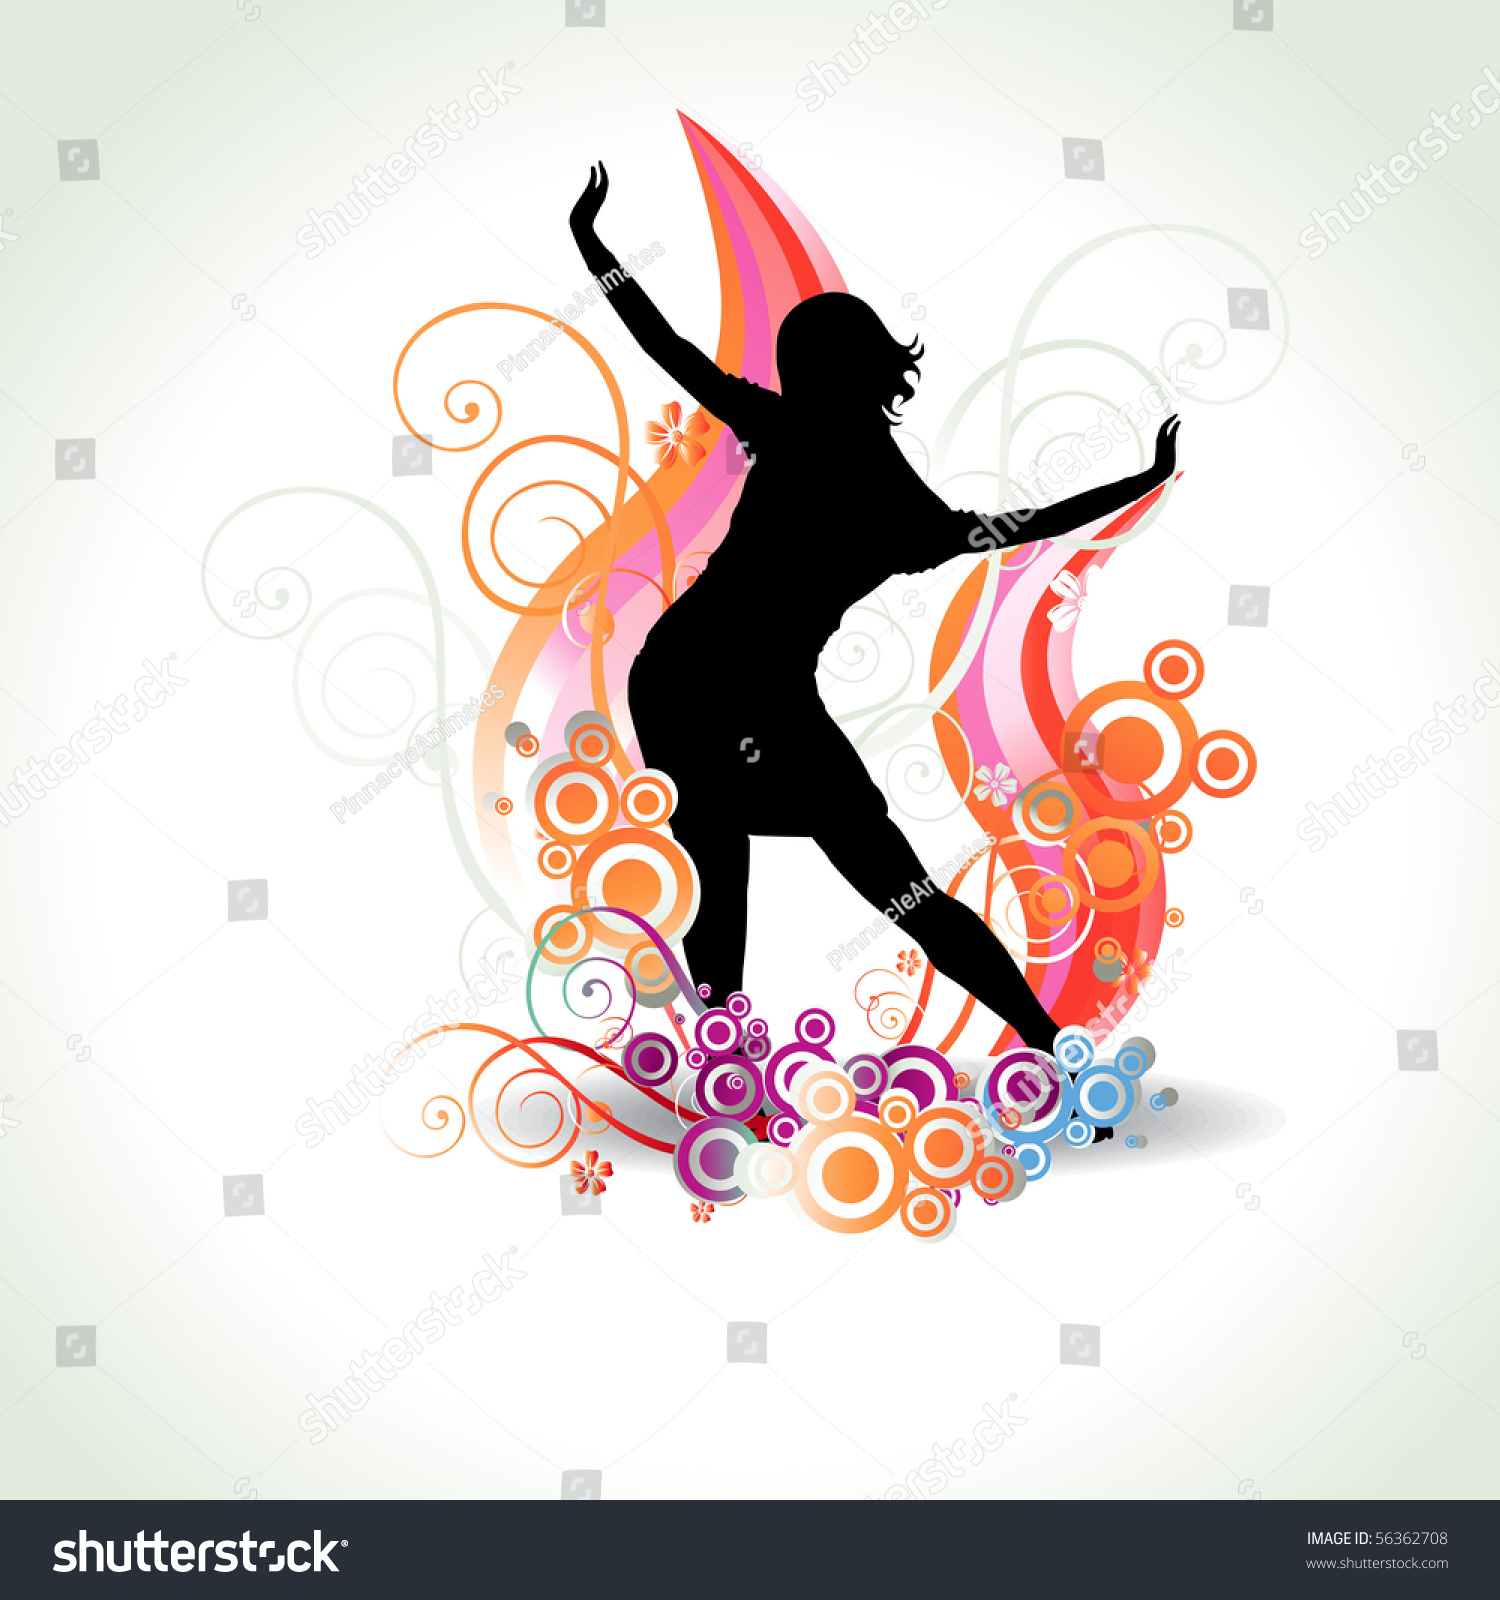 Abstract Painting Of Girl Dancing Vector Abstract Dancing Girl Stock Vector 56362708